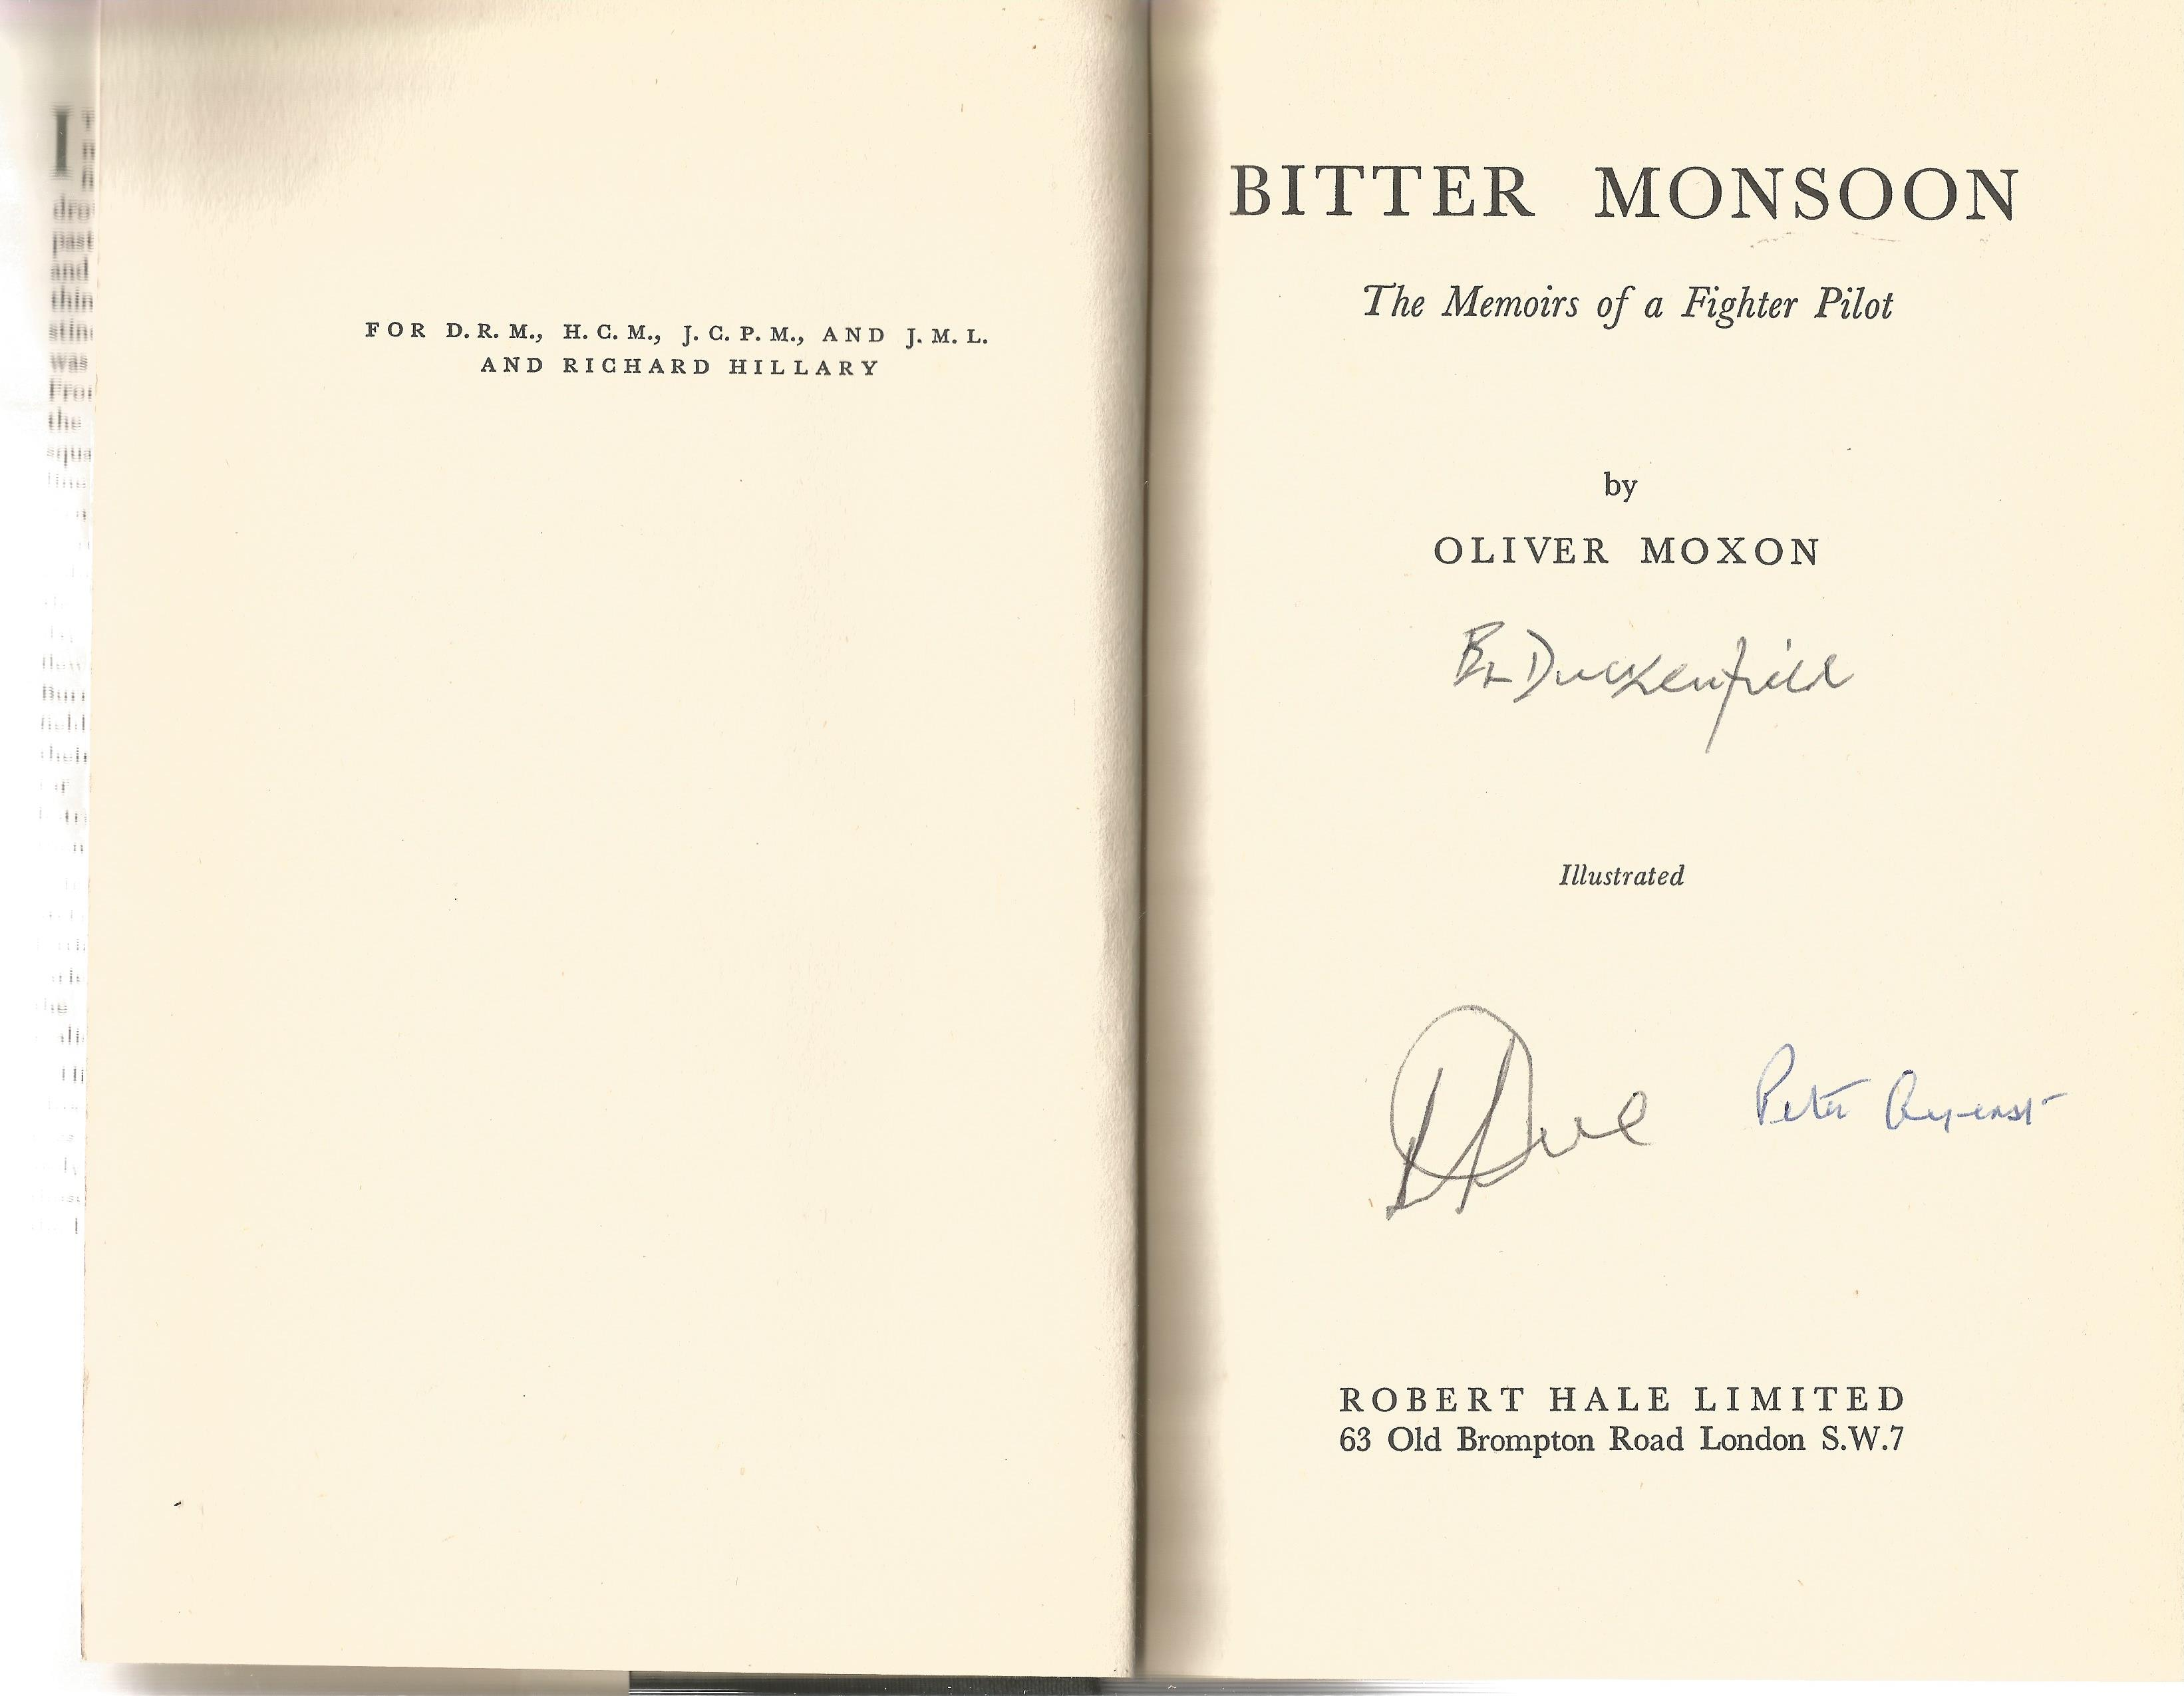 Oliver Moxon. Bitter Monsoon The Memoirs of a Fighter Pilot. A WW2 First Edition, Multi Signed - Image 2 of 3